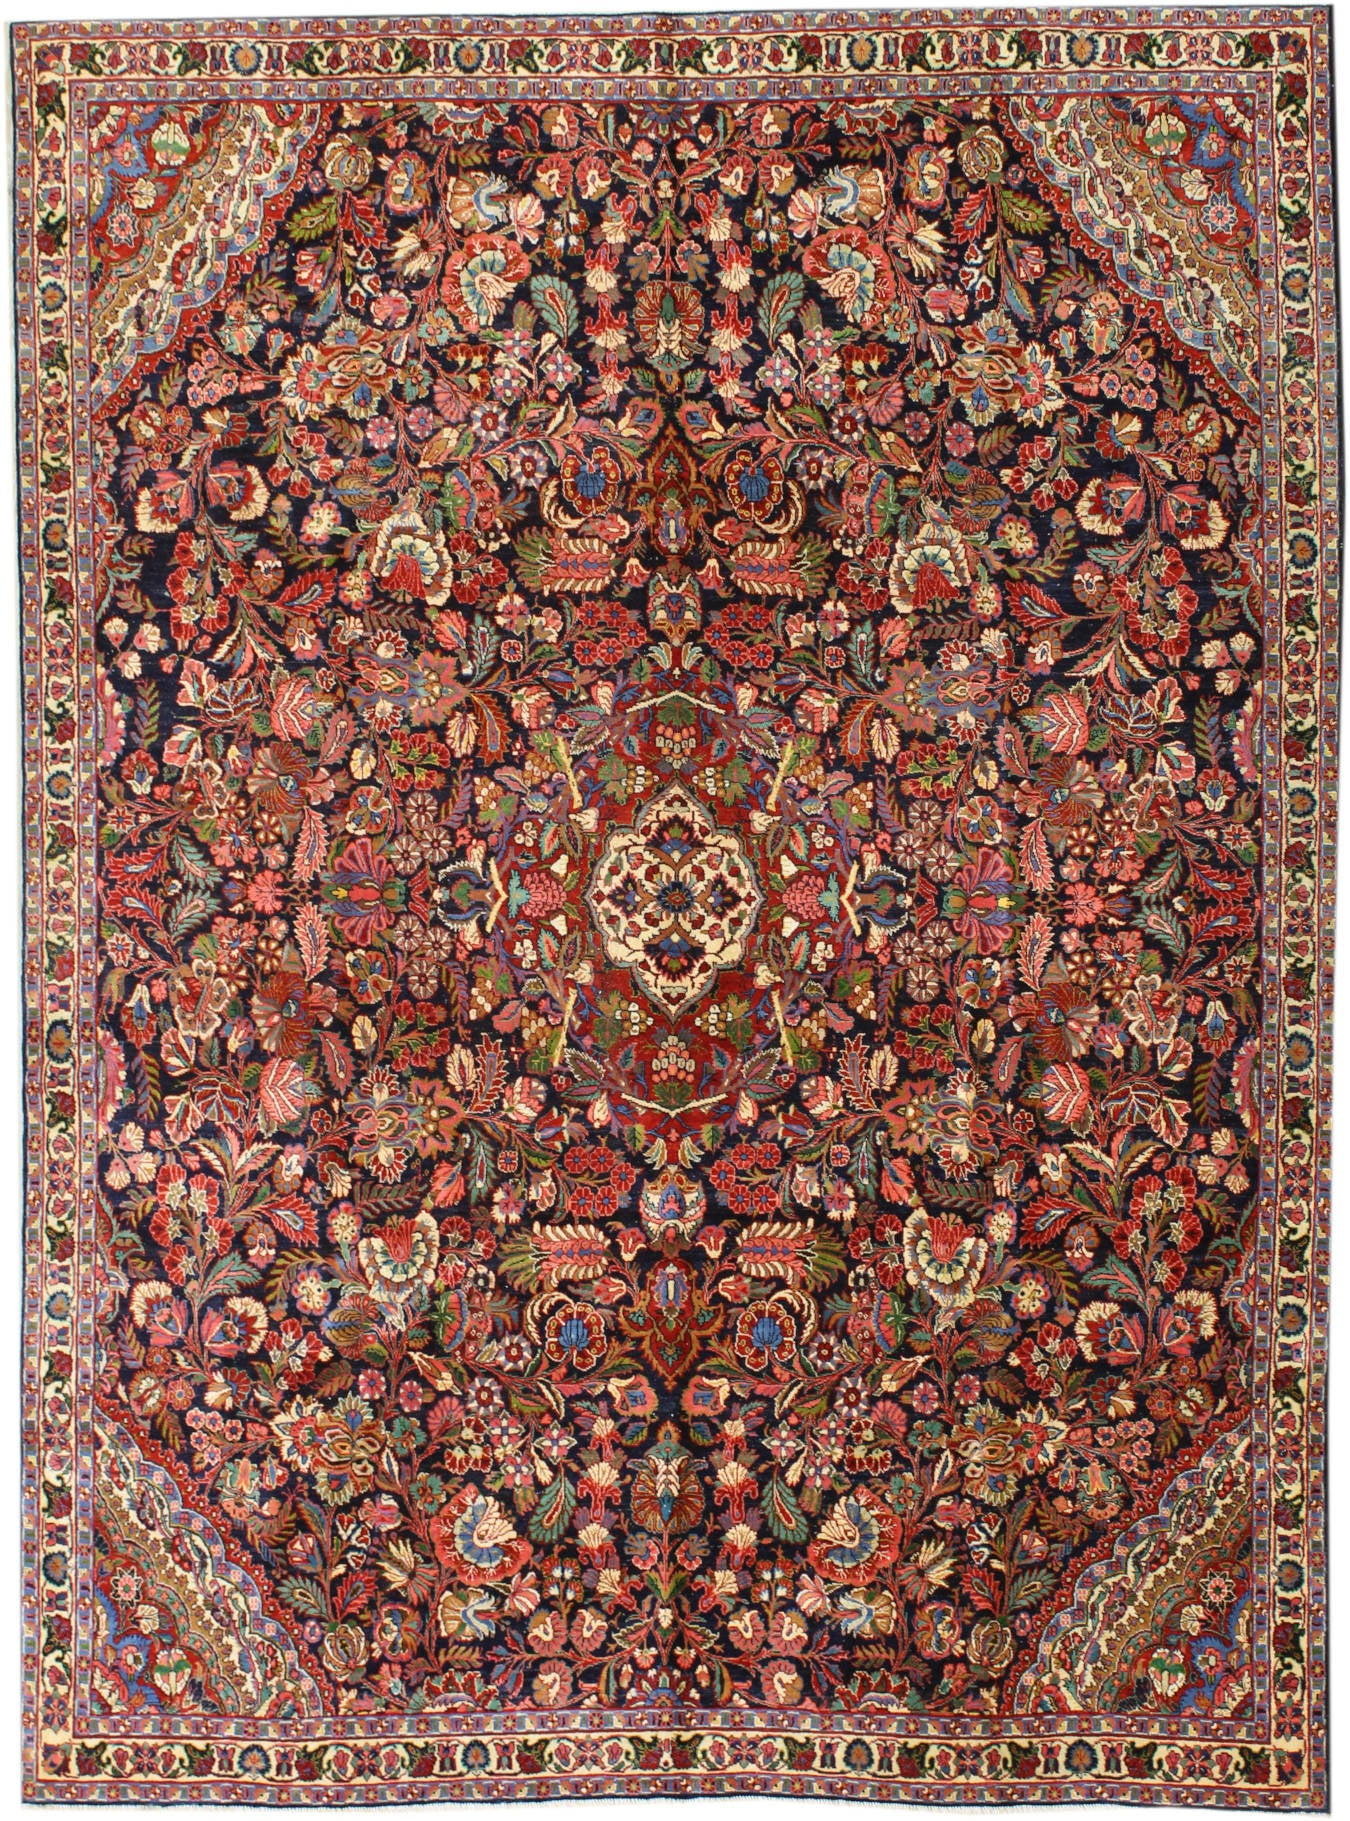 Antique Kazvin Handwoven Traditional Rug